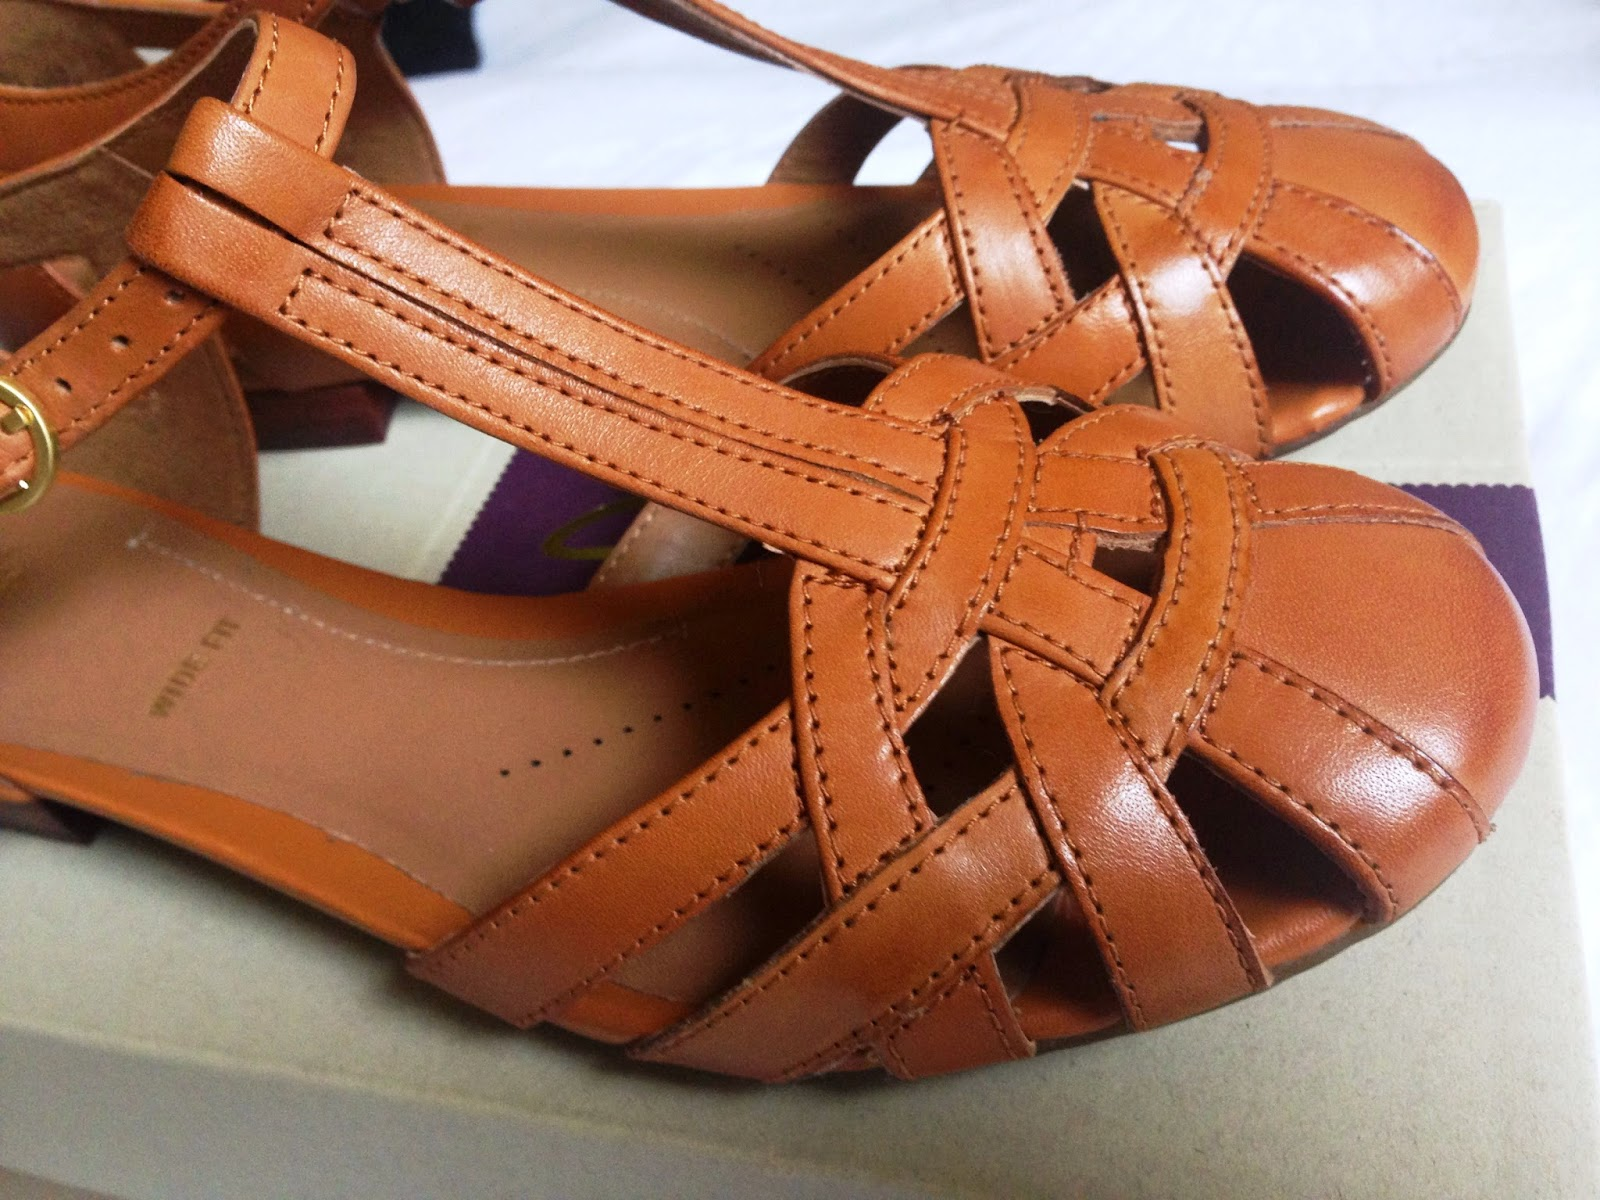 58a1d6ab186e6 Fashion | Summer Sandals from Clarks | Lilla Loves